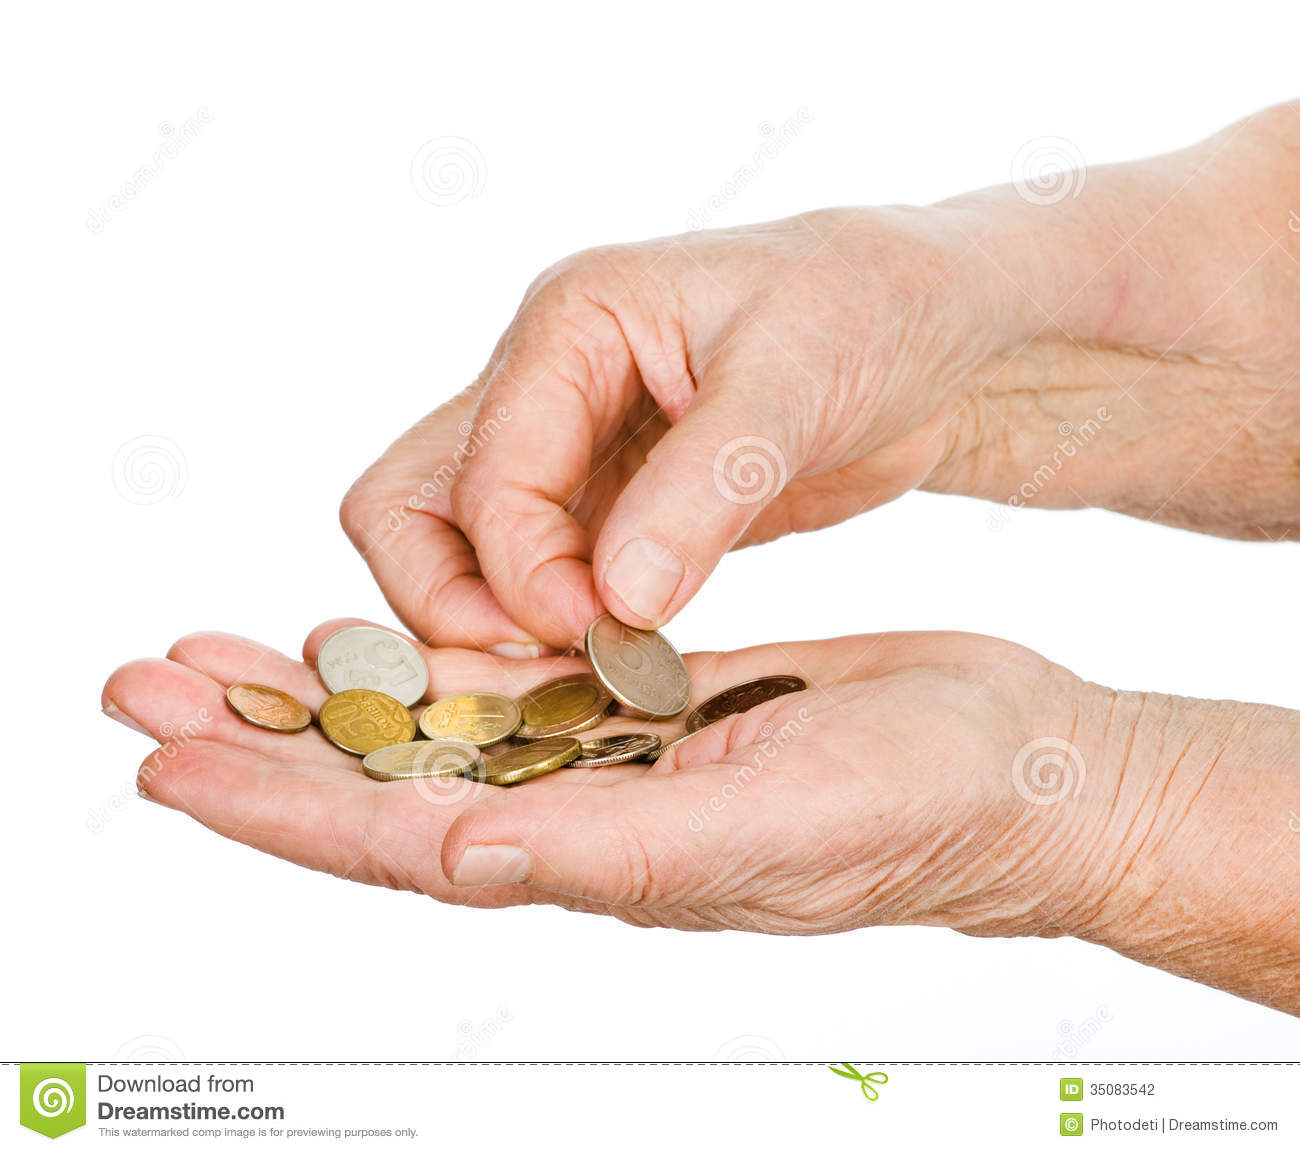 Hands of the old man touching last coins.